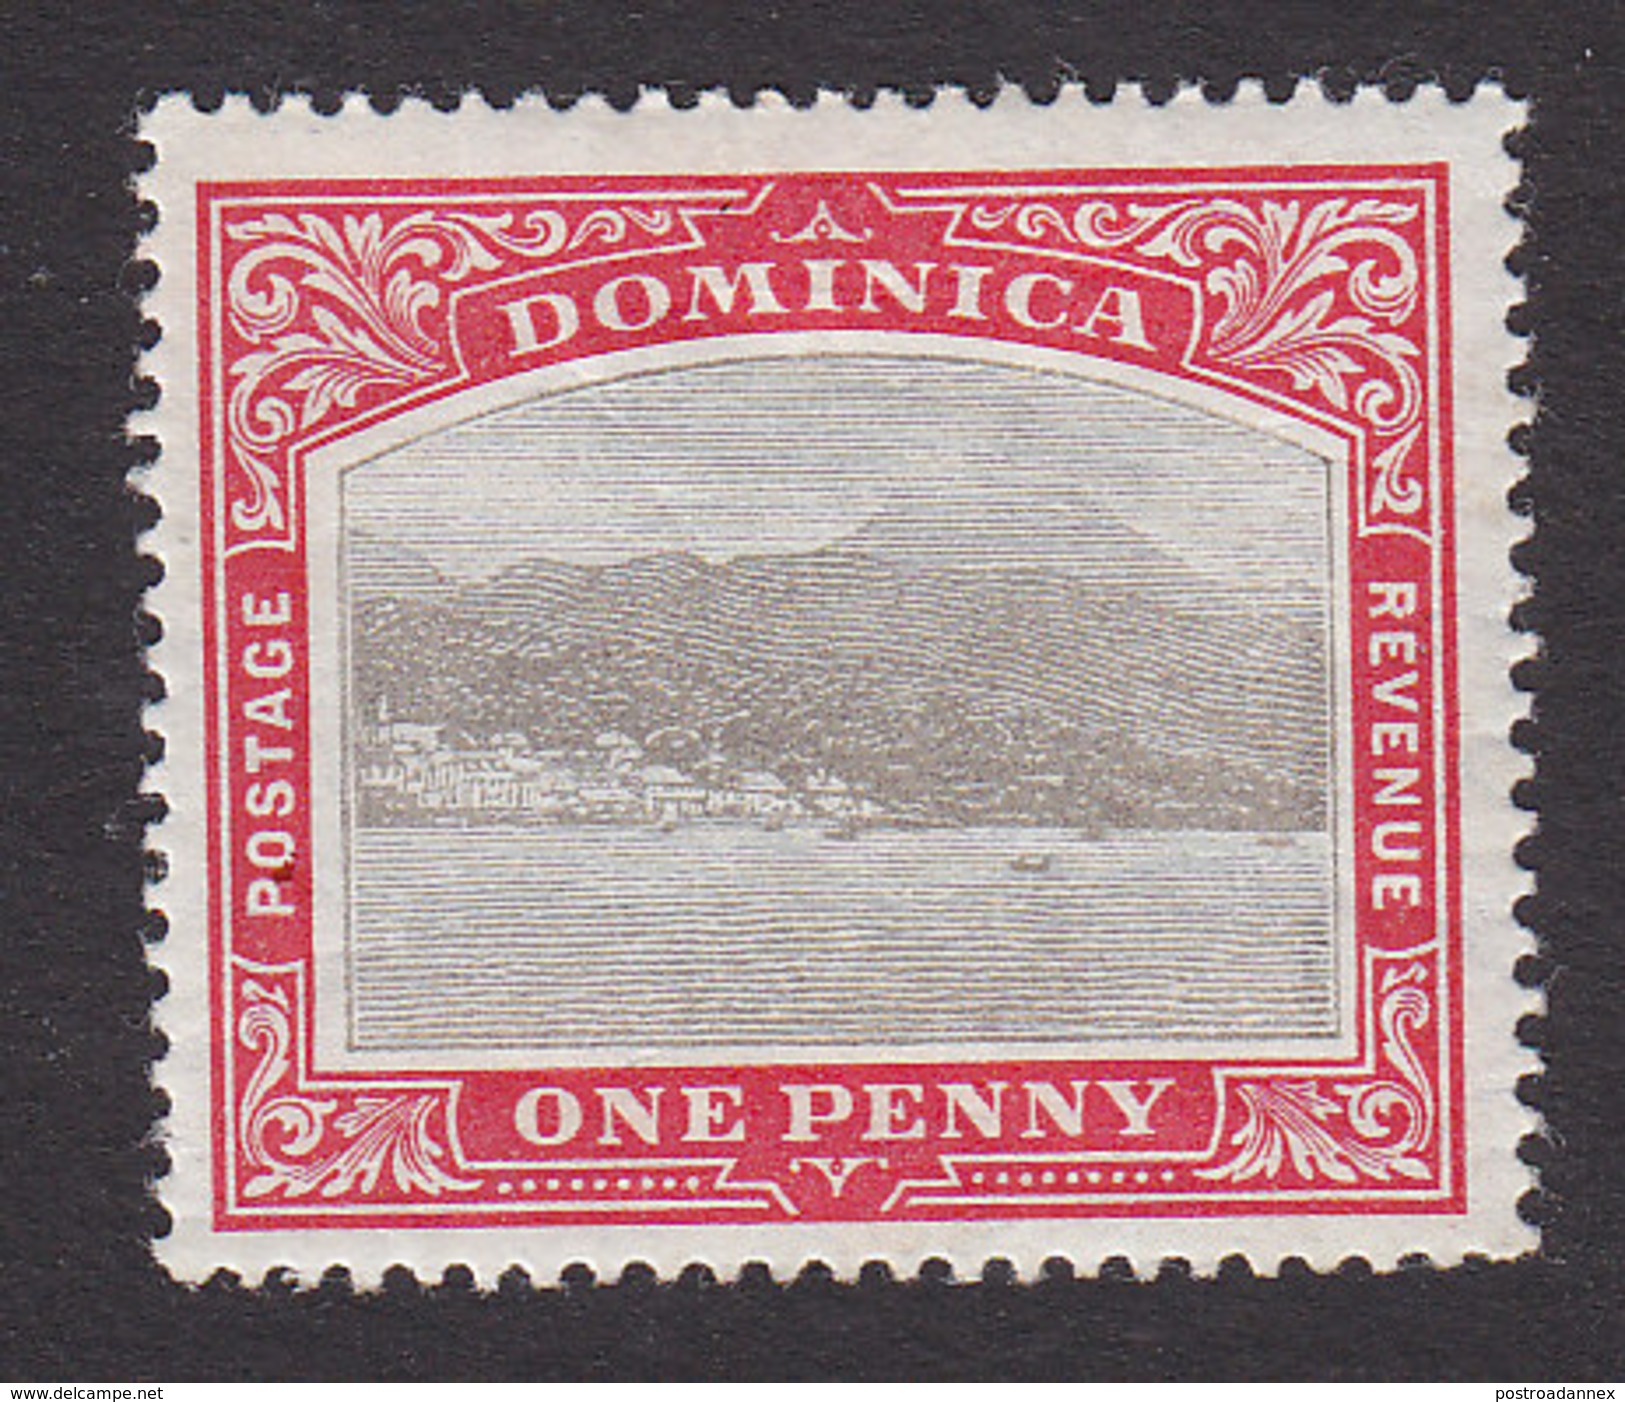 Dominica, Scott #23, Mint Hinged, Roseau, Capital Of Dominica, Issued 1903 - Dominica (...-1978)